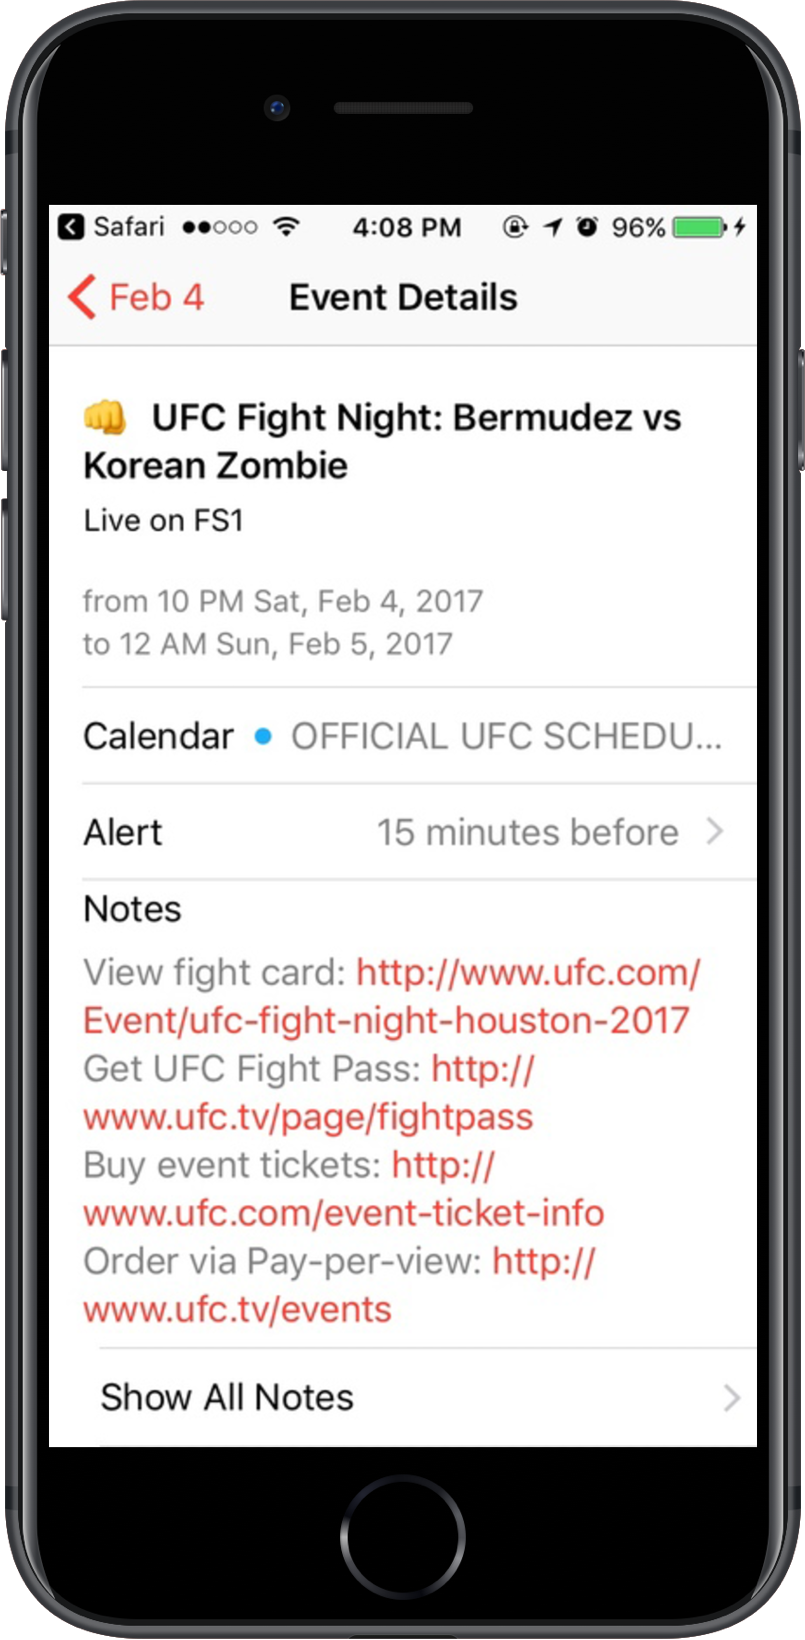 UFC_iphone7jetblack_portrait copy.png